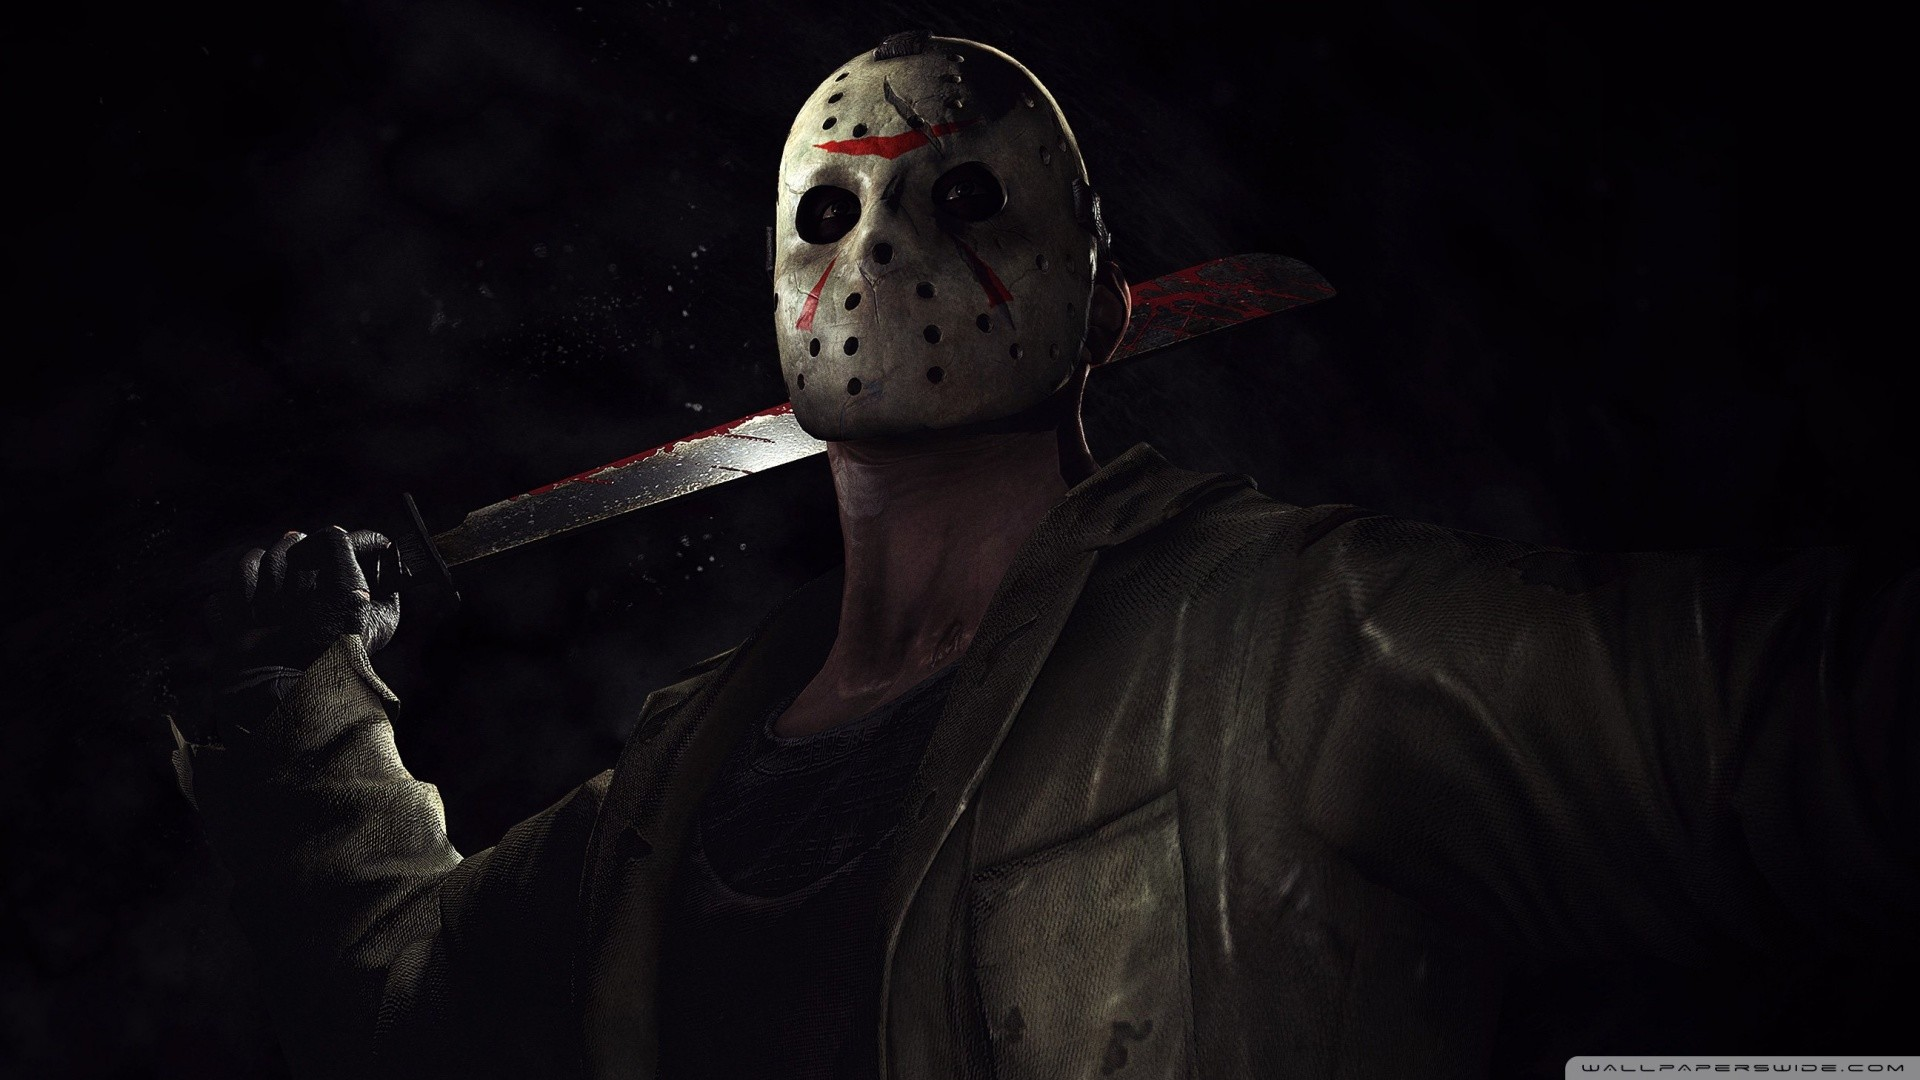 1920x1080 Jason Voorhees Friday the 13th Game Wallpaper #44735